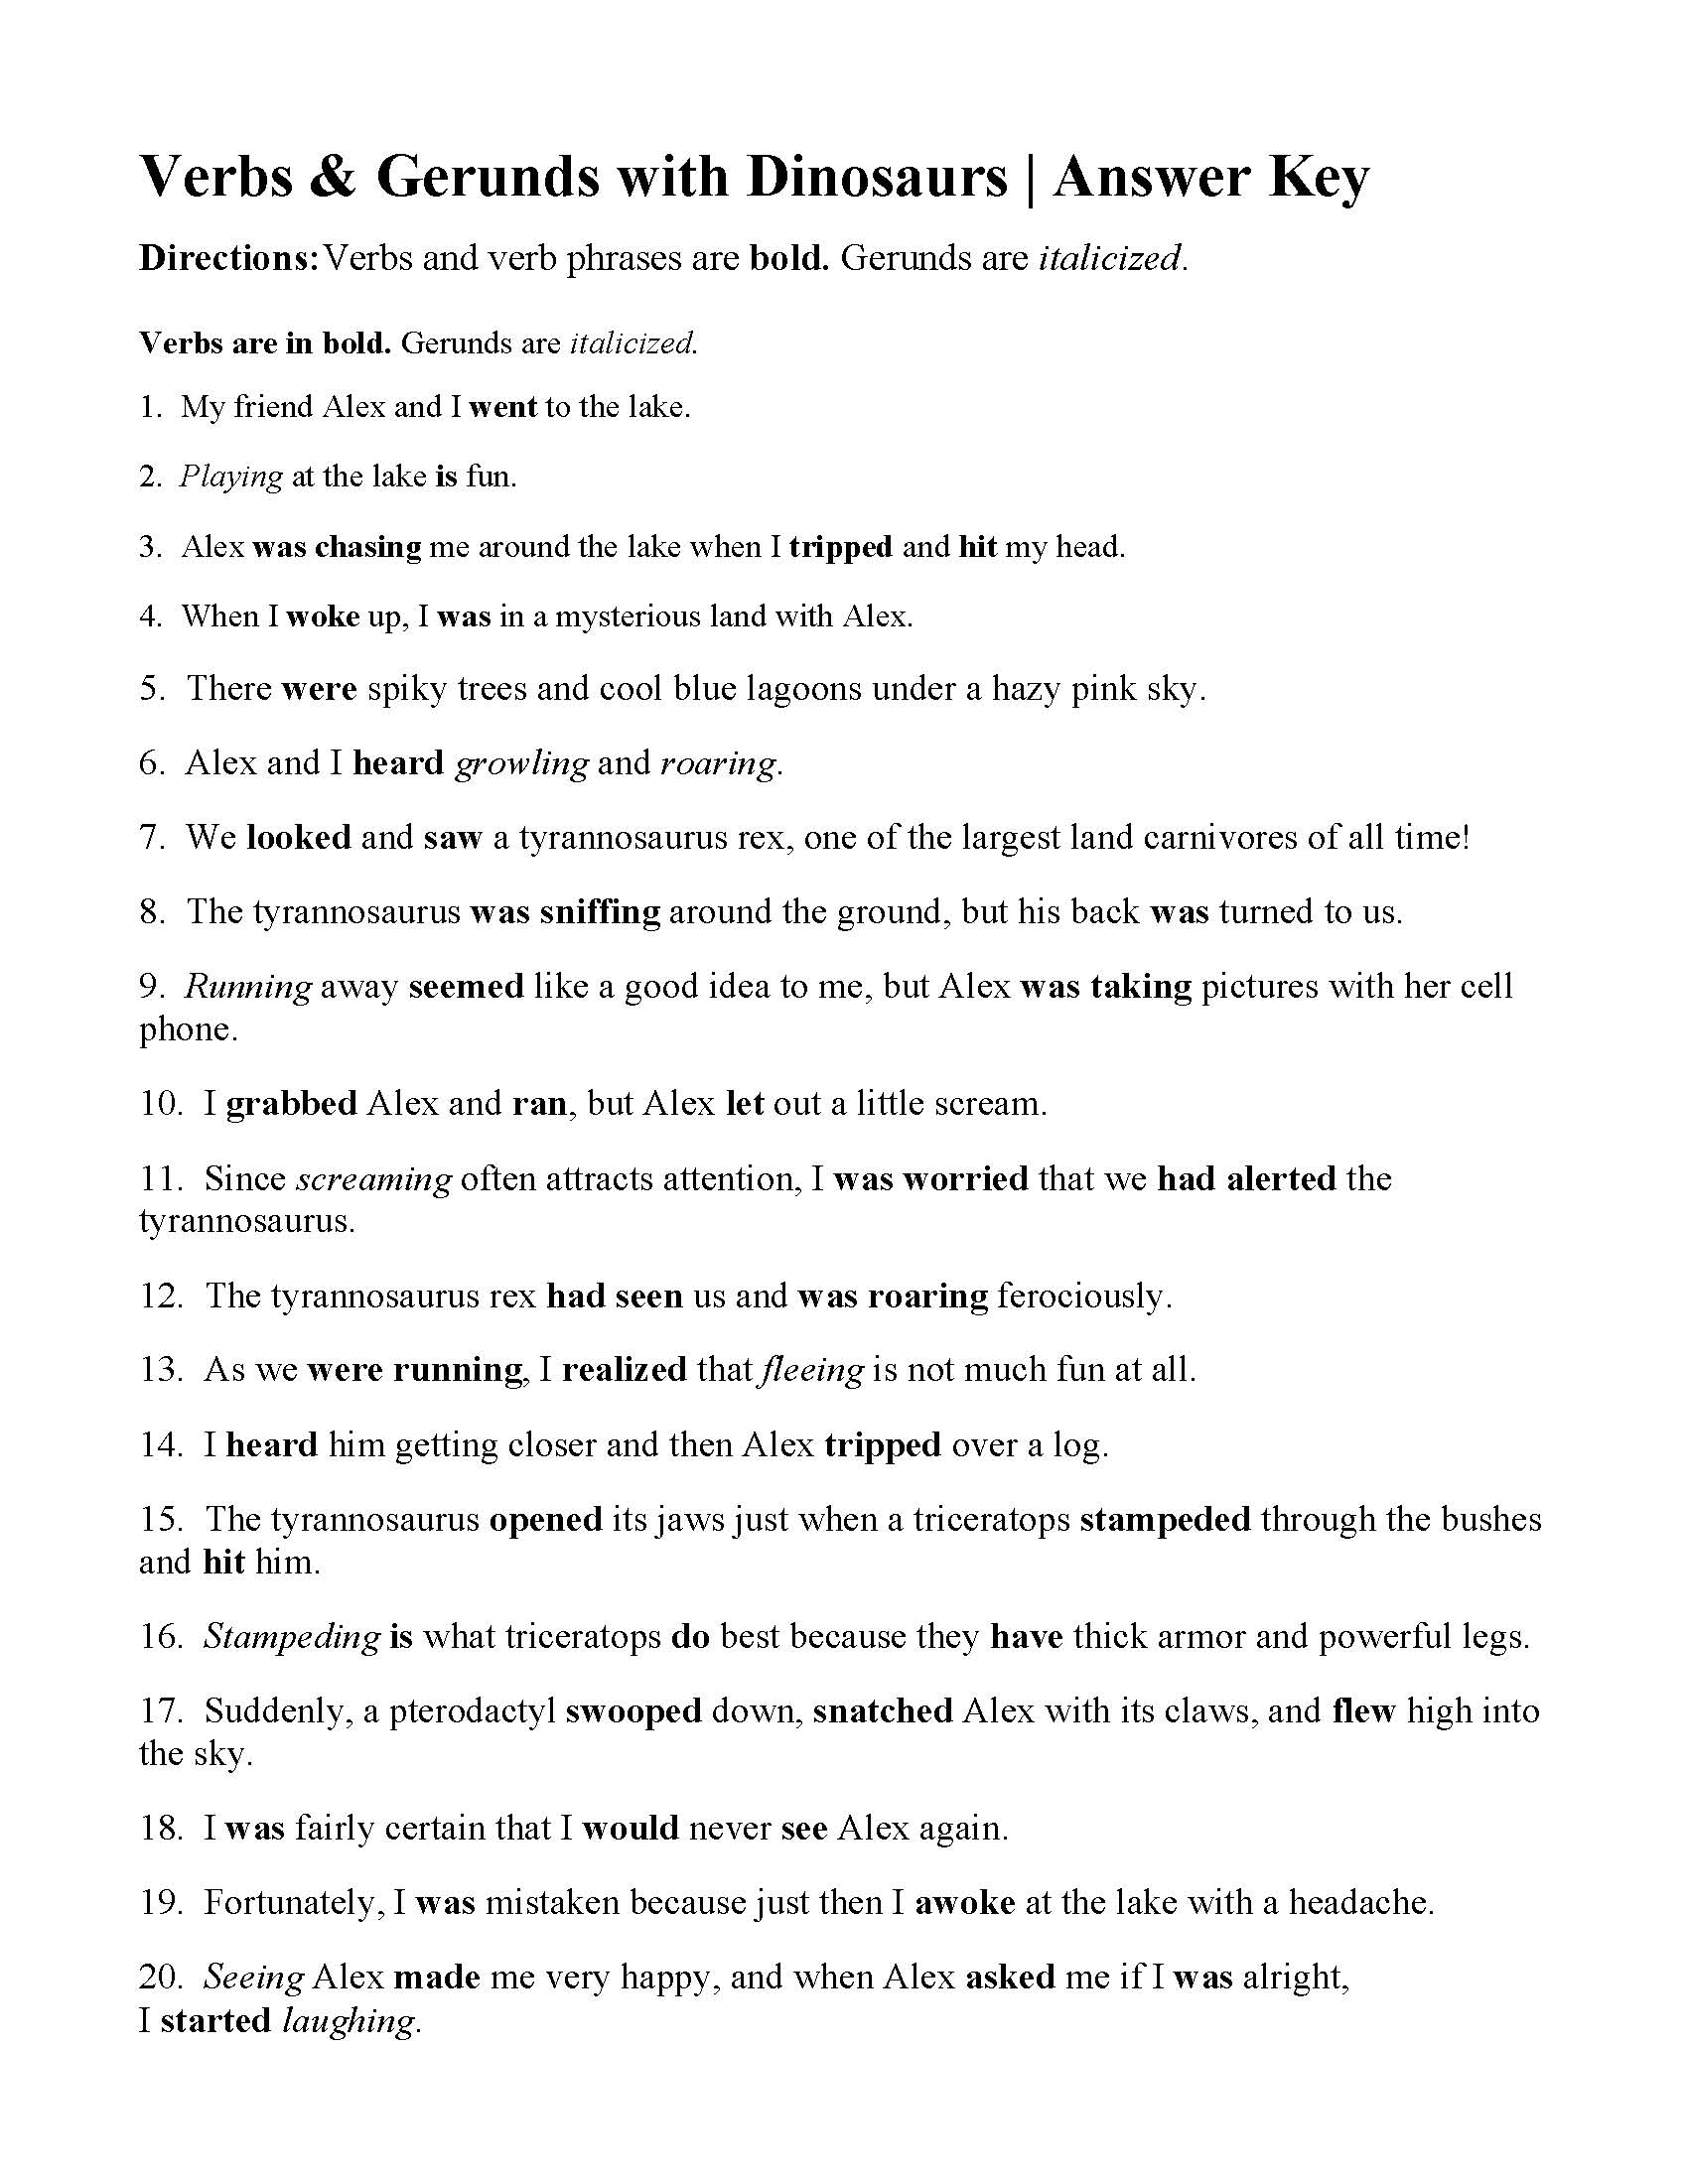 Worksheets Gerund Worksheet verbs of being and gerunds worksheet answers this is the answer key for worksheet